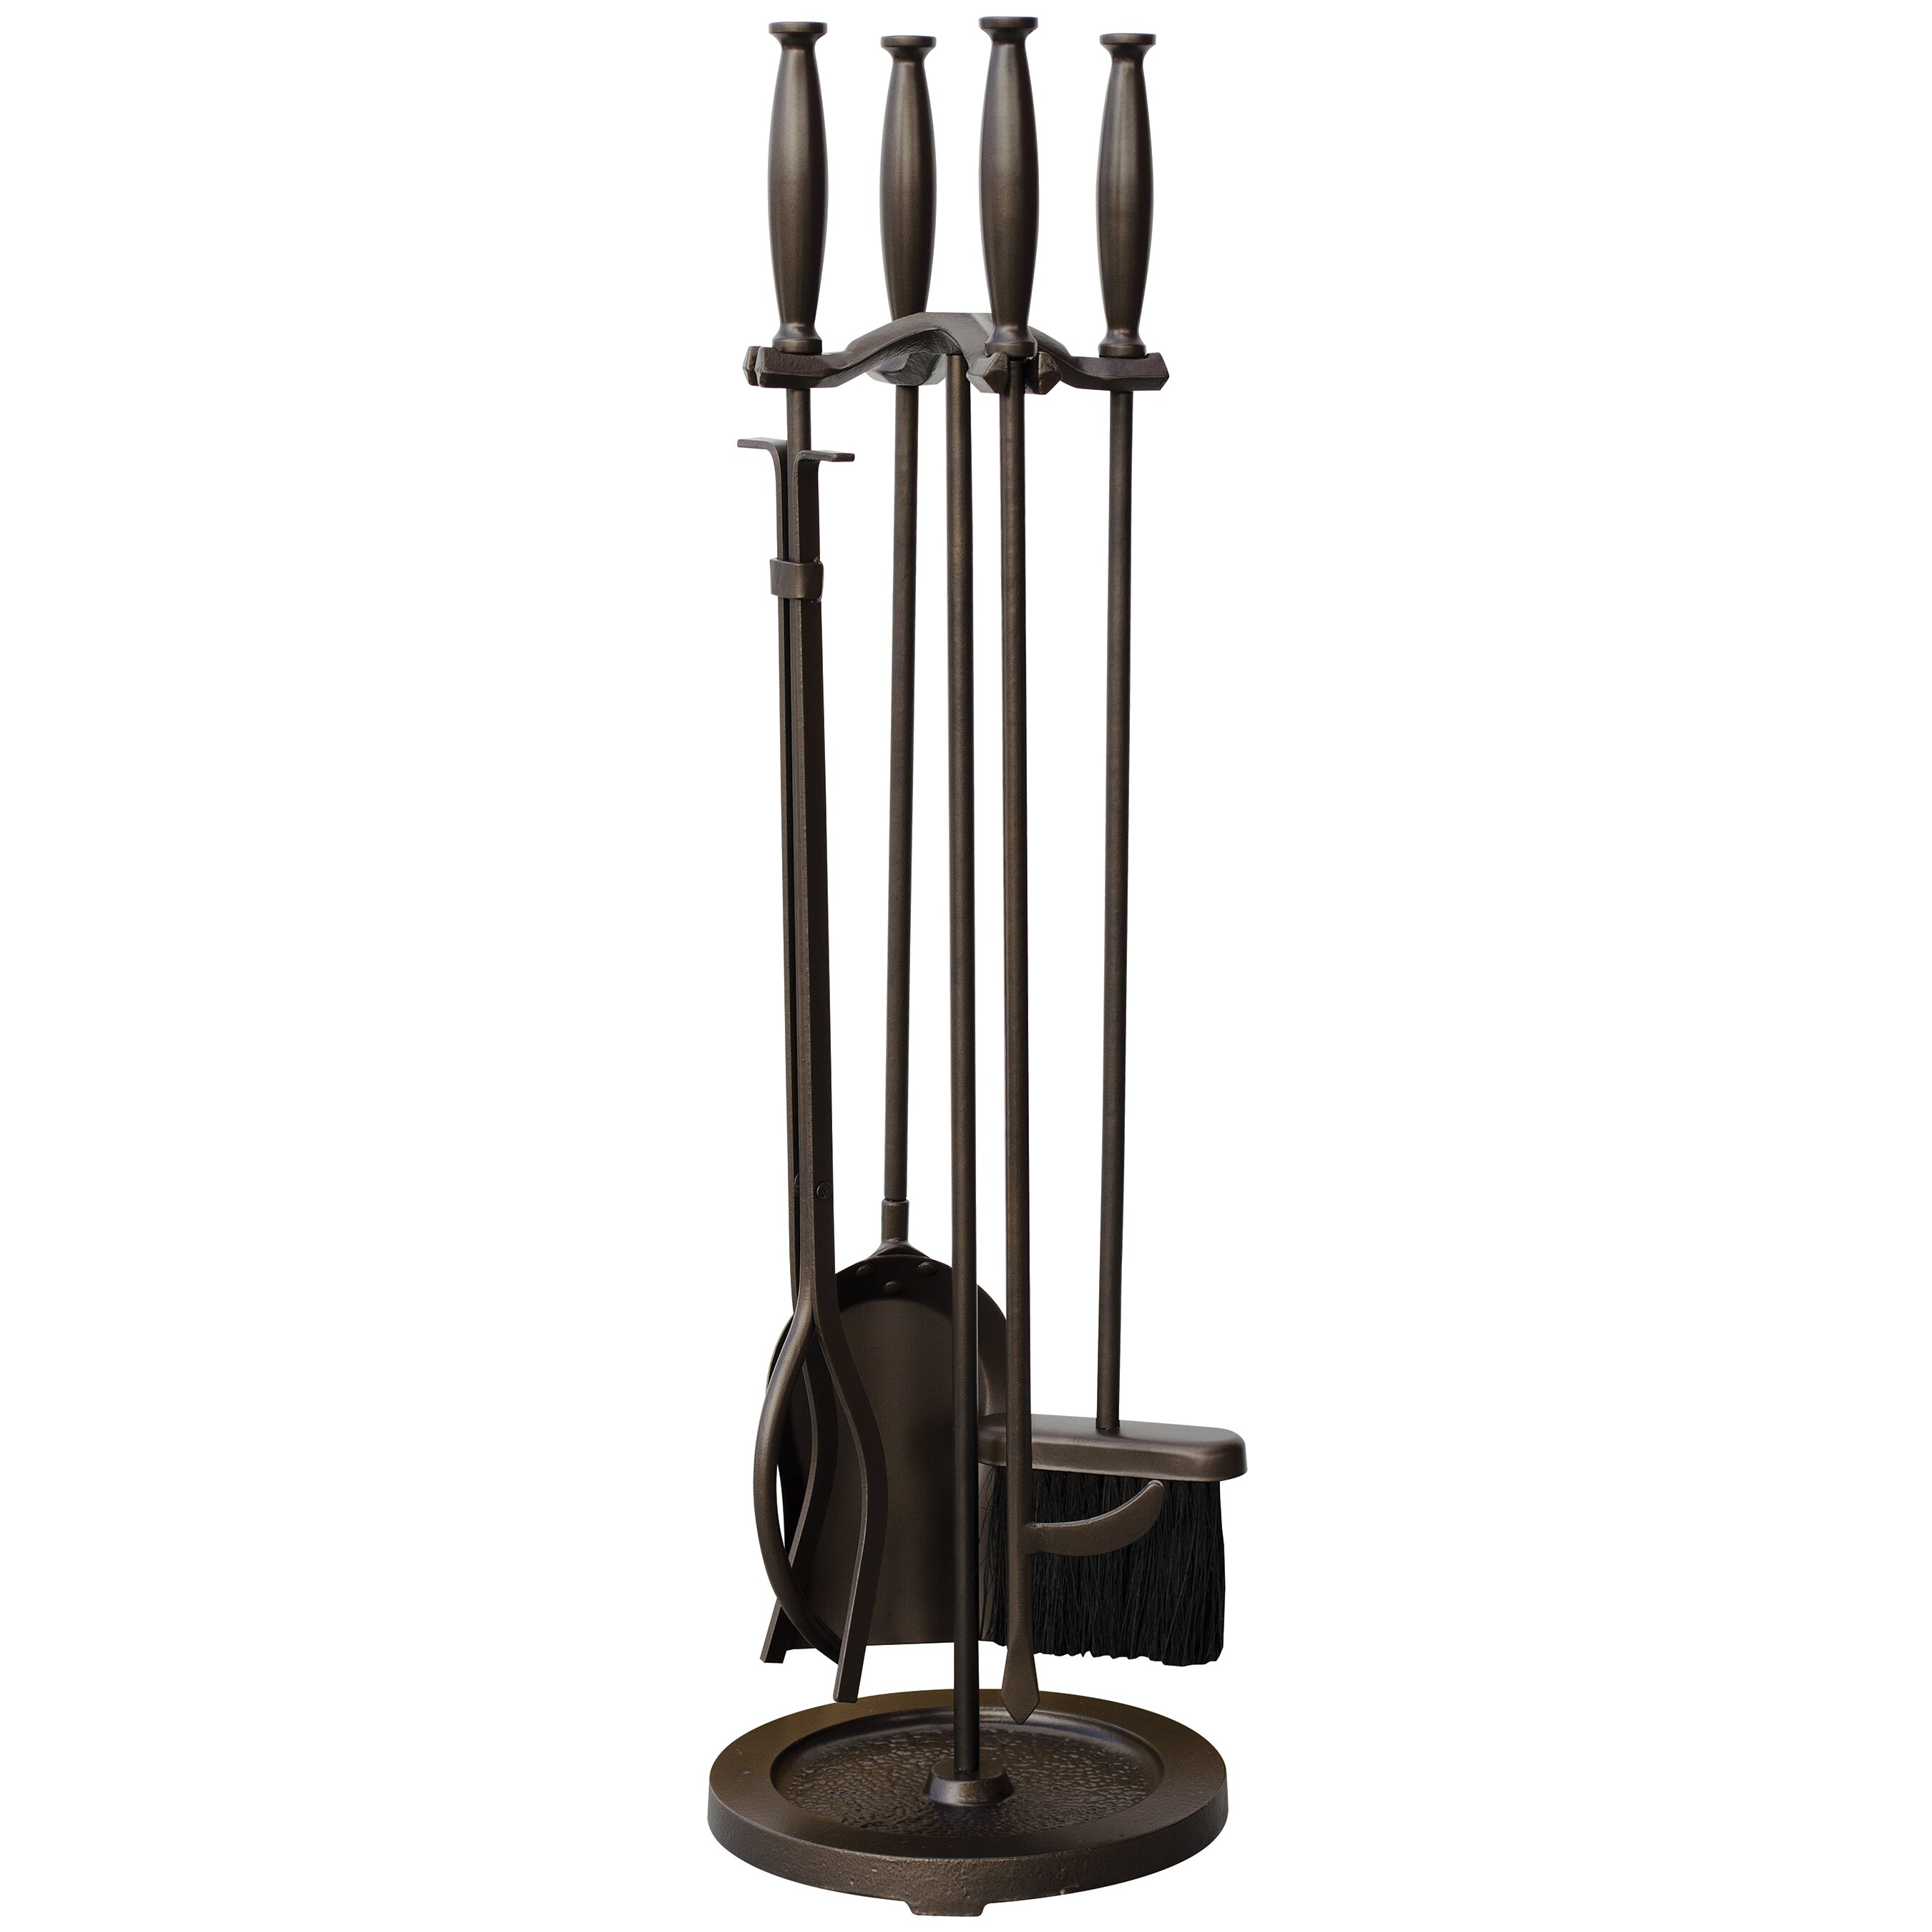 Uniflame 5 Piece Fireplace Tool Set & Reviews